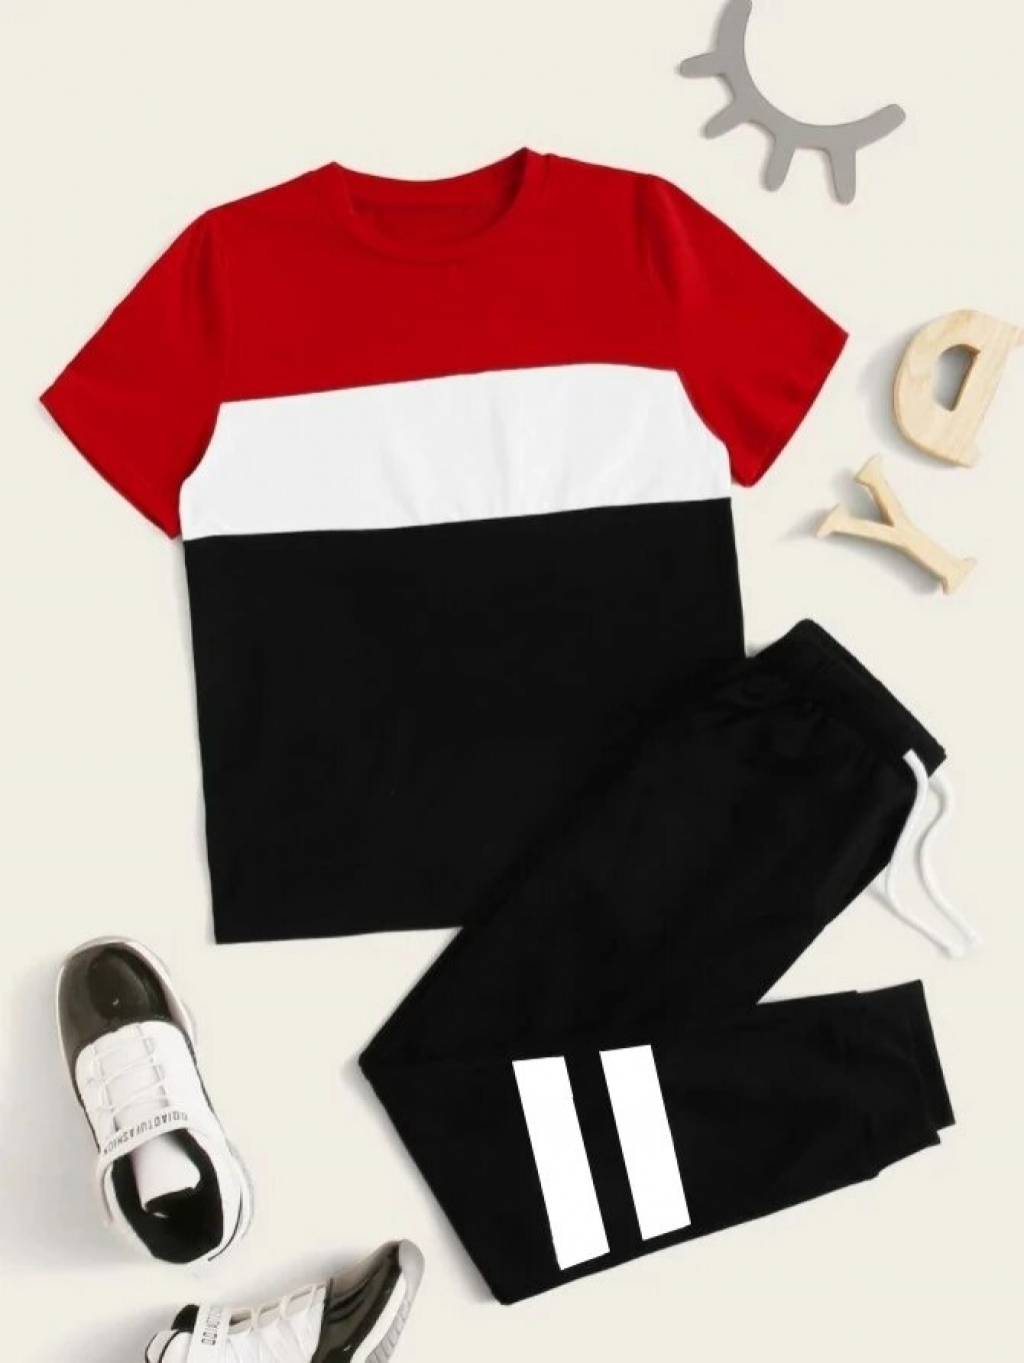 16137200580_track-suit-design-track-suit-for-boys-baby-boy-track-suit-boys-track-suit-kids-online-shopping-shopping-for-baby-boy-track-suit-Baby-boy-online-shopping-in-Pakistan.jpg